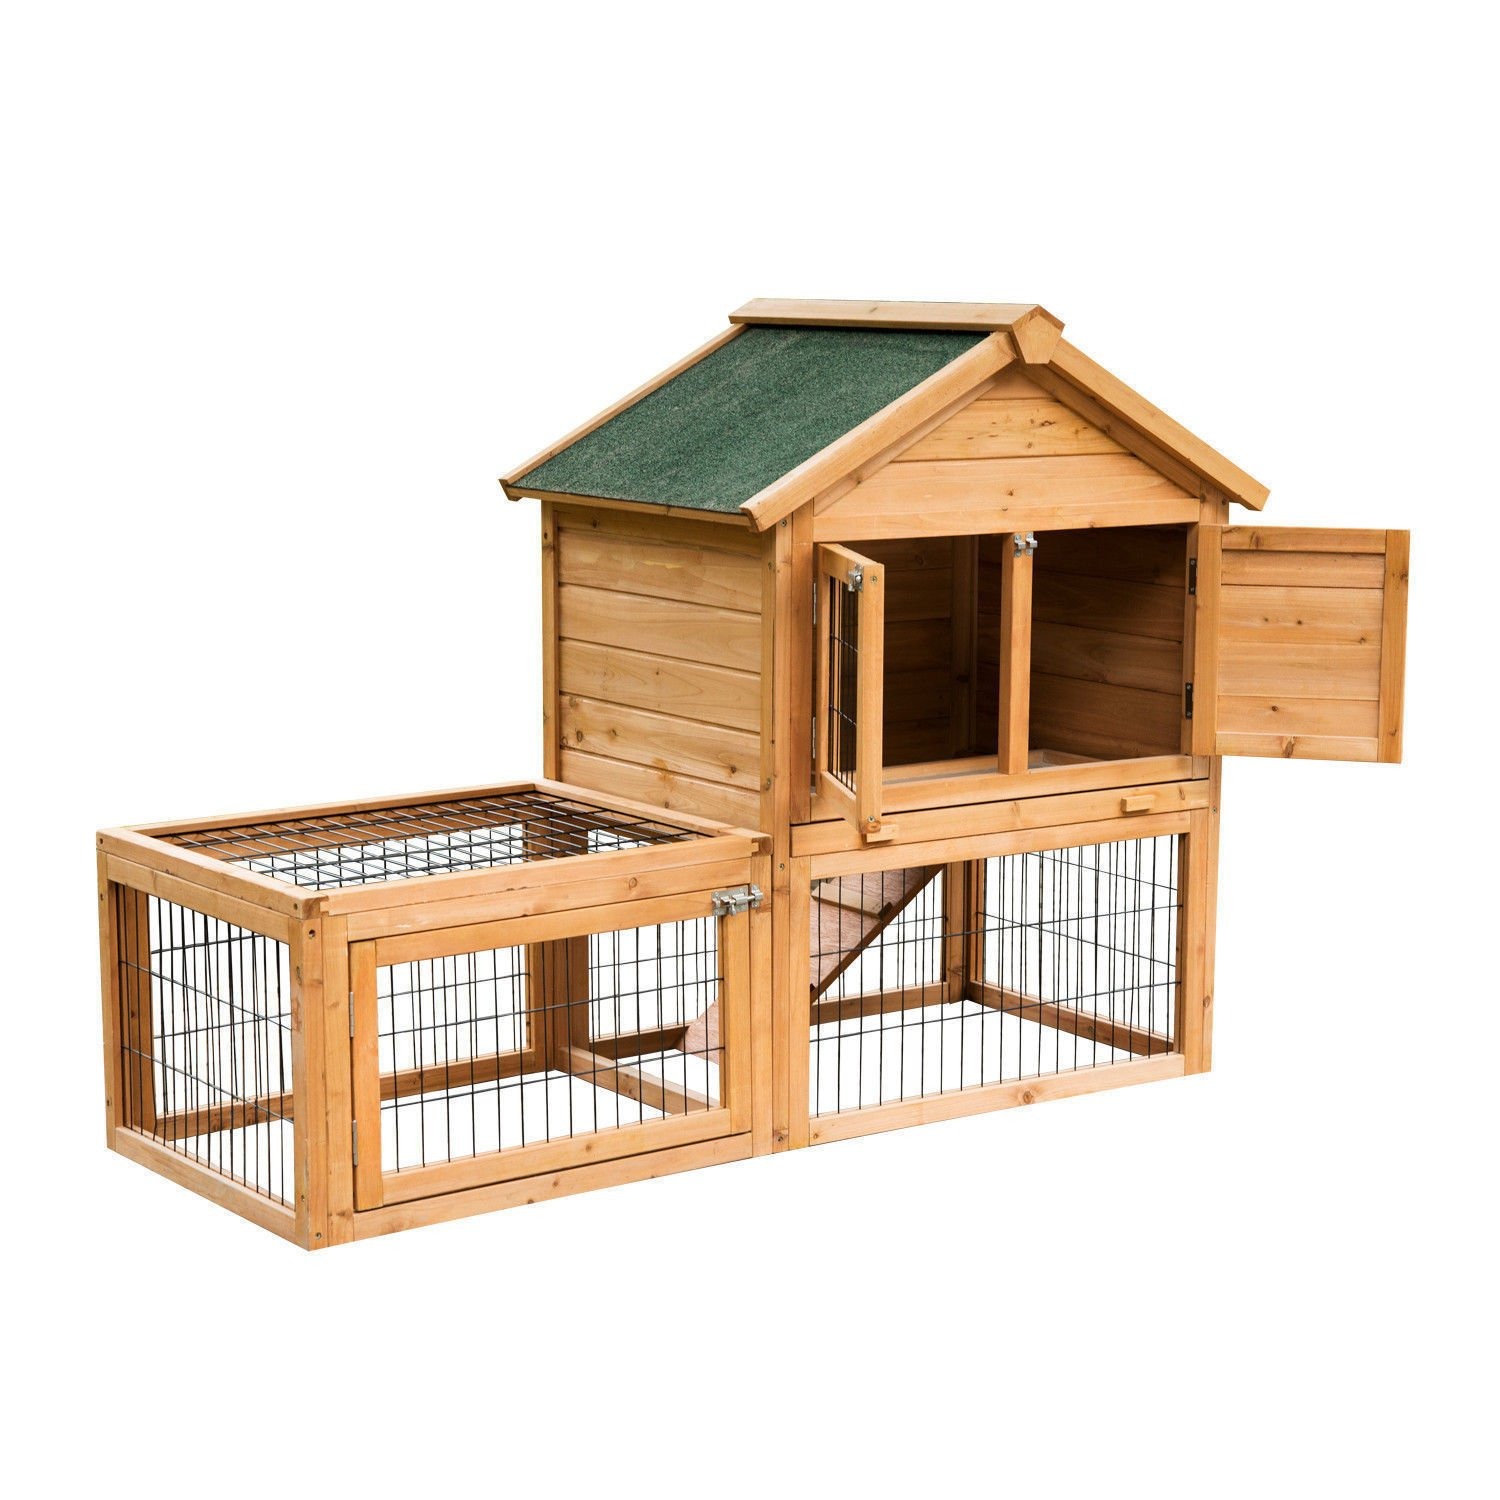 Eight24hours 53'' Wooden Chicken Coop Rabbit Hutch Small Pet House Hen Cages + FREE E-Book by Eight24hours (Image #4)